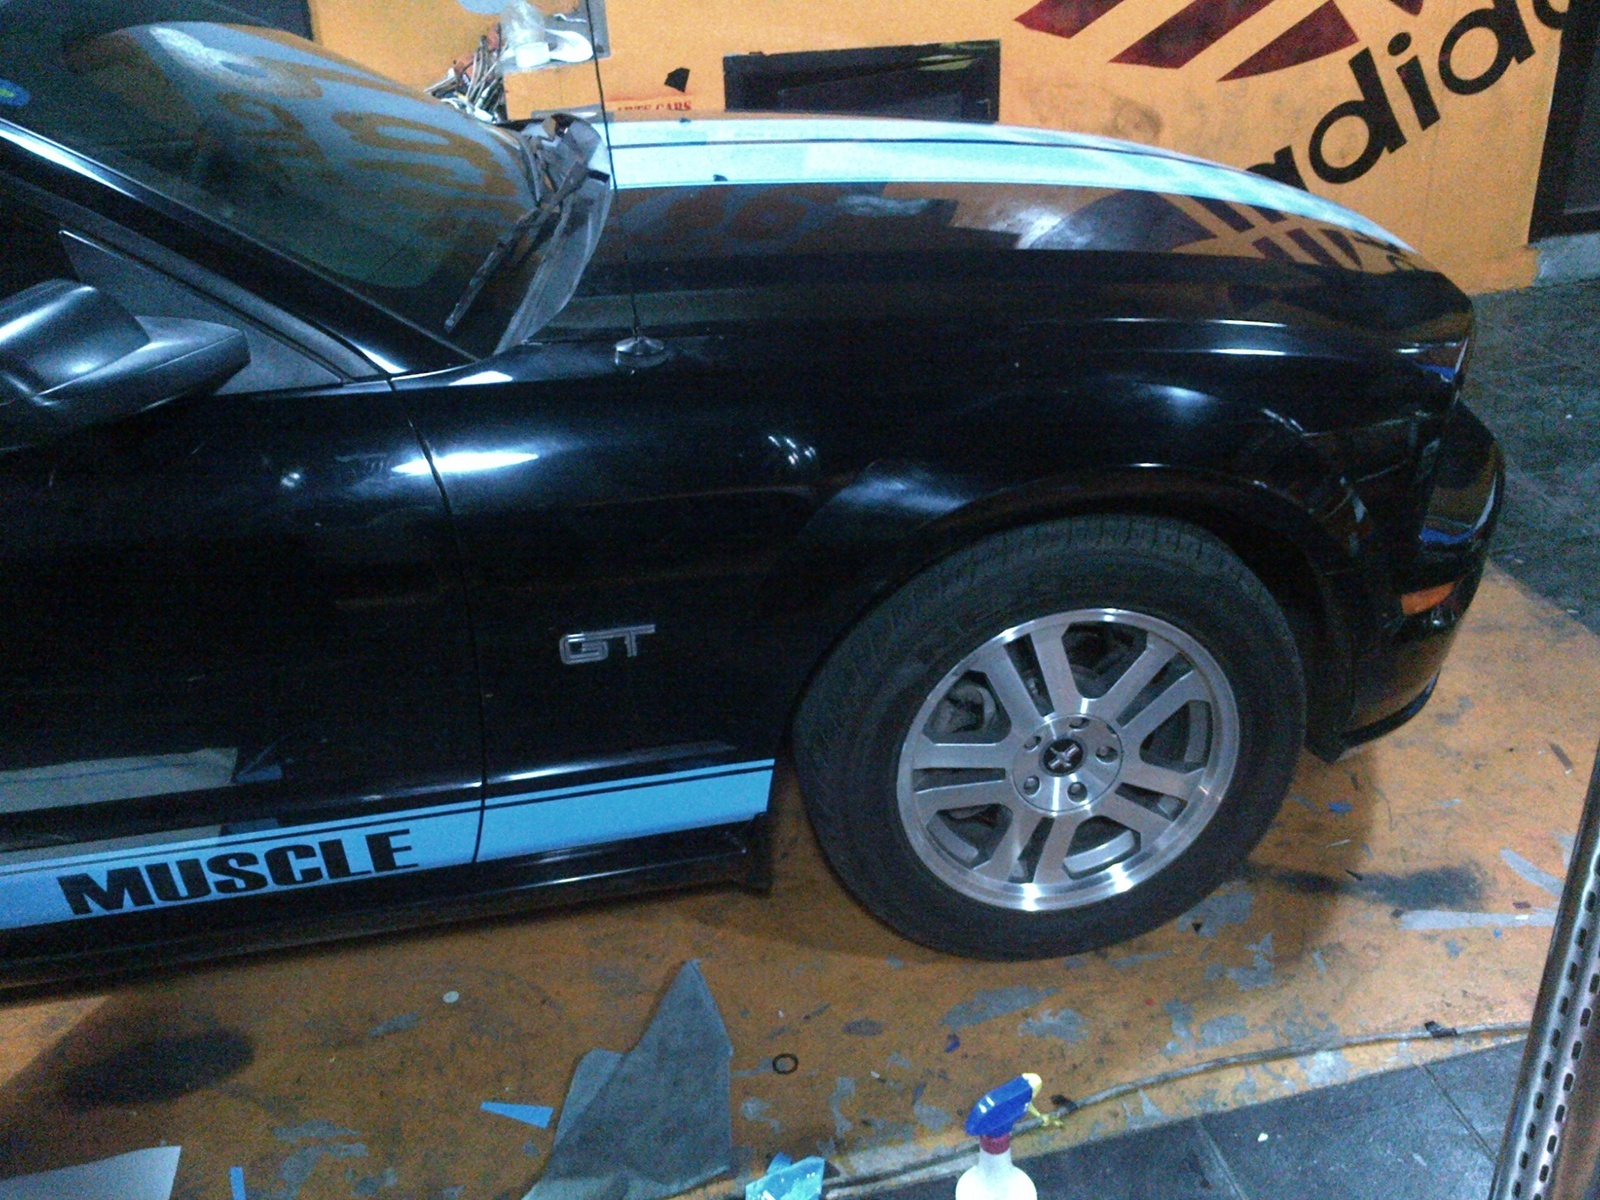 Ford Mustang Questions Guys i have a mustang gt 2006 V8